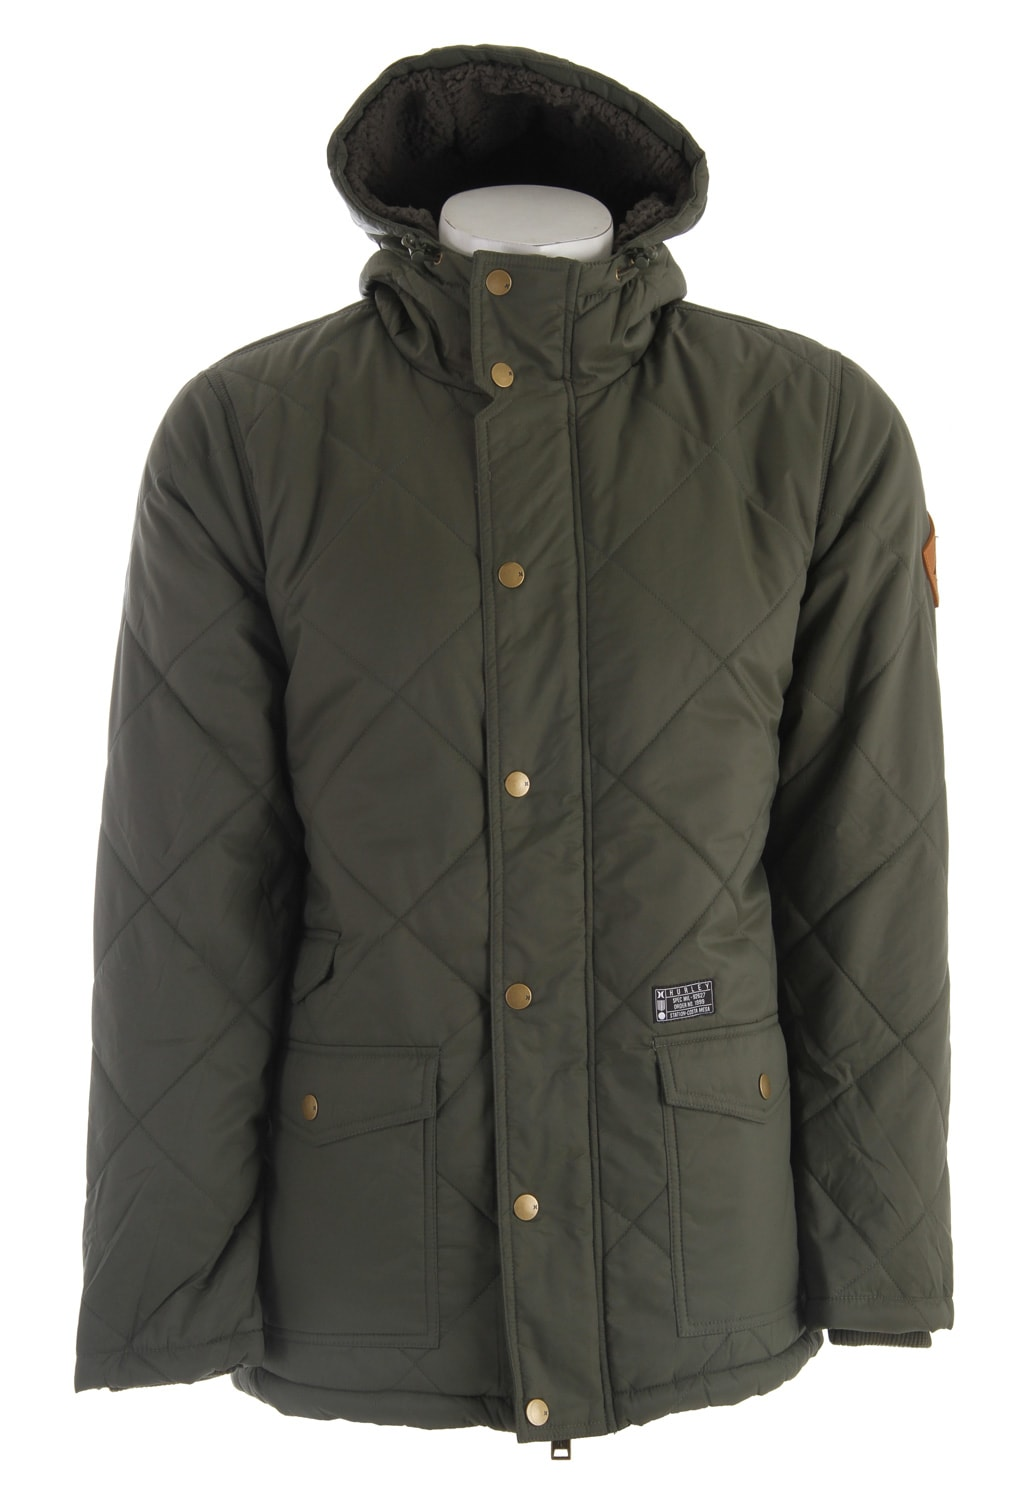 Shop for Hurley Disorder Jacket Dark Forest - Men's